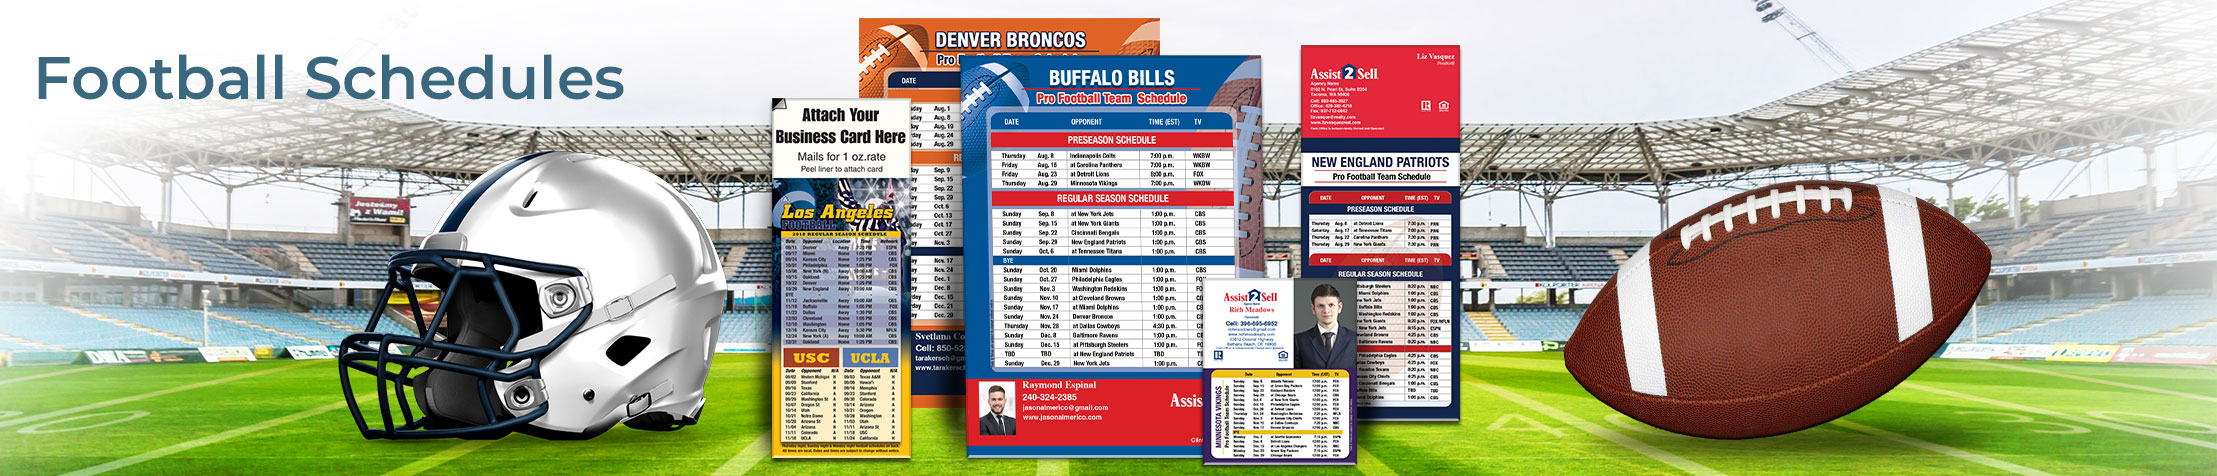 Assist2Sell Real Estate Football Schedules - Assist2Sell Real Estate personalized football schedules | BestPrintBuy.com